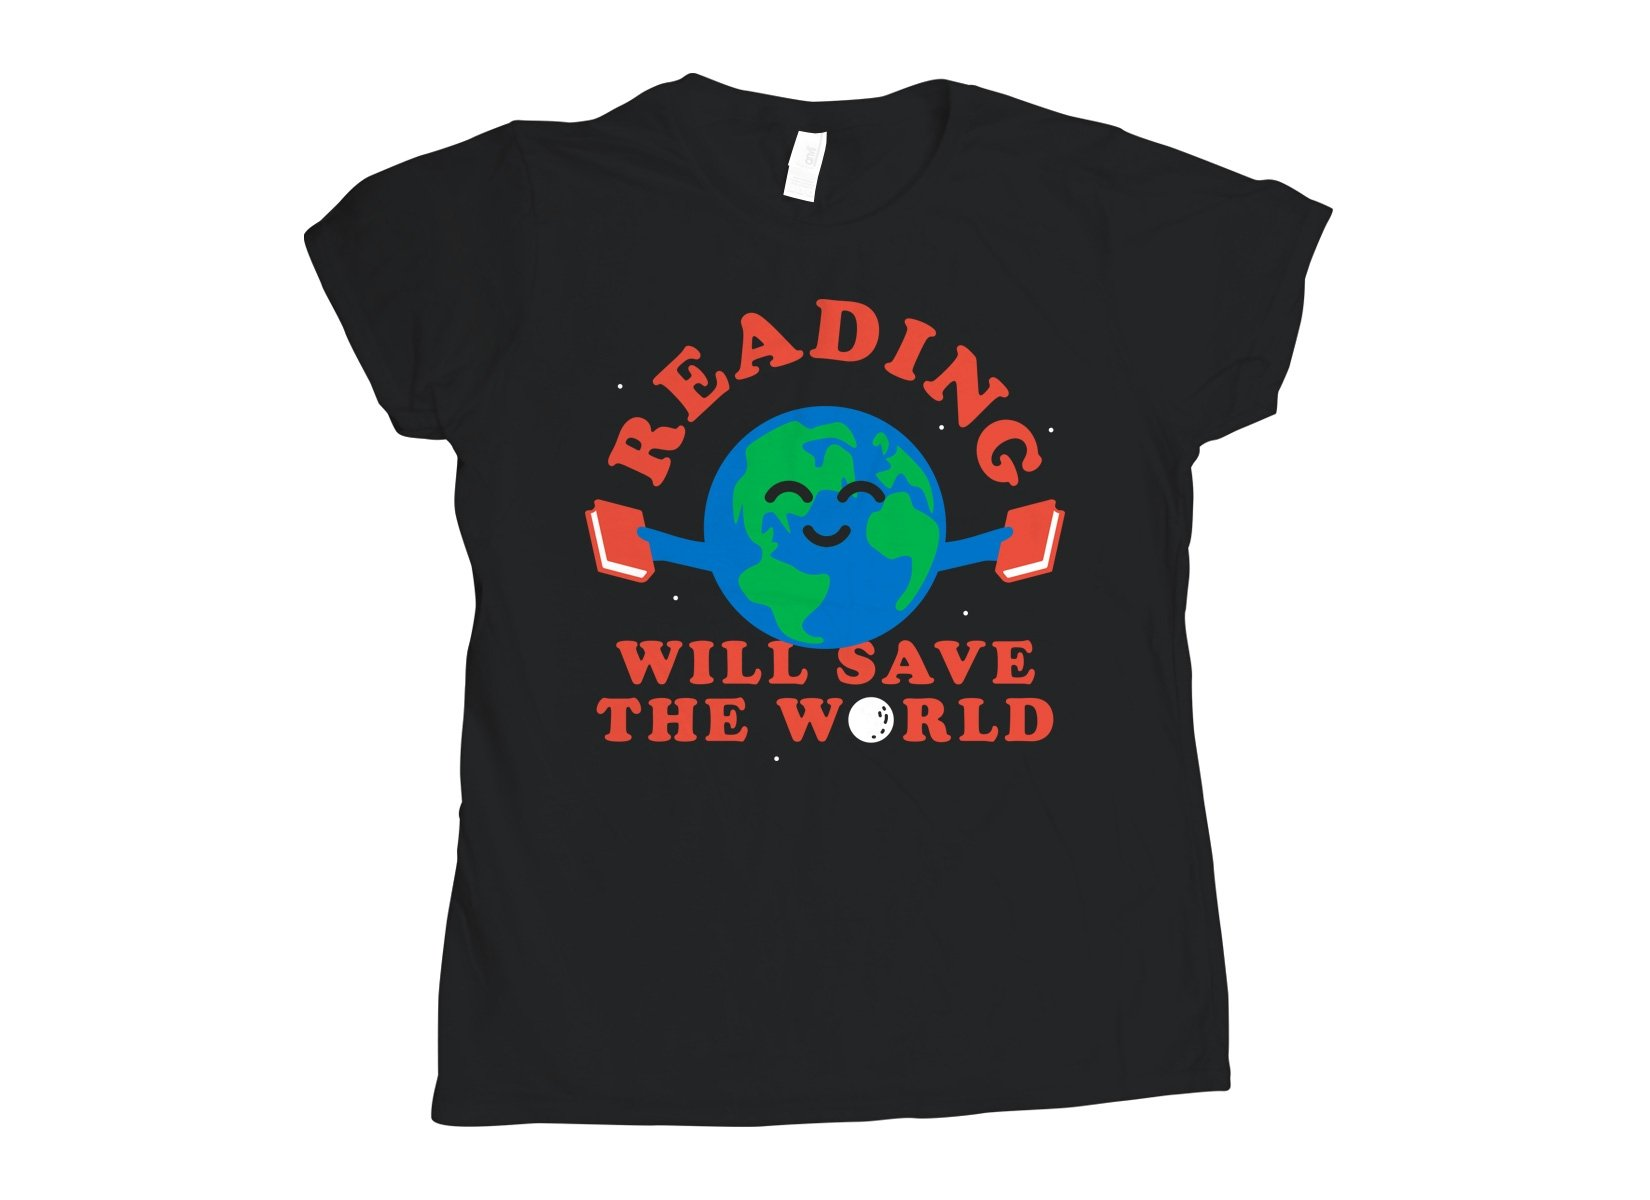 Reading Will Save The World on Womens T-Shirt